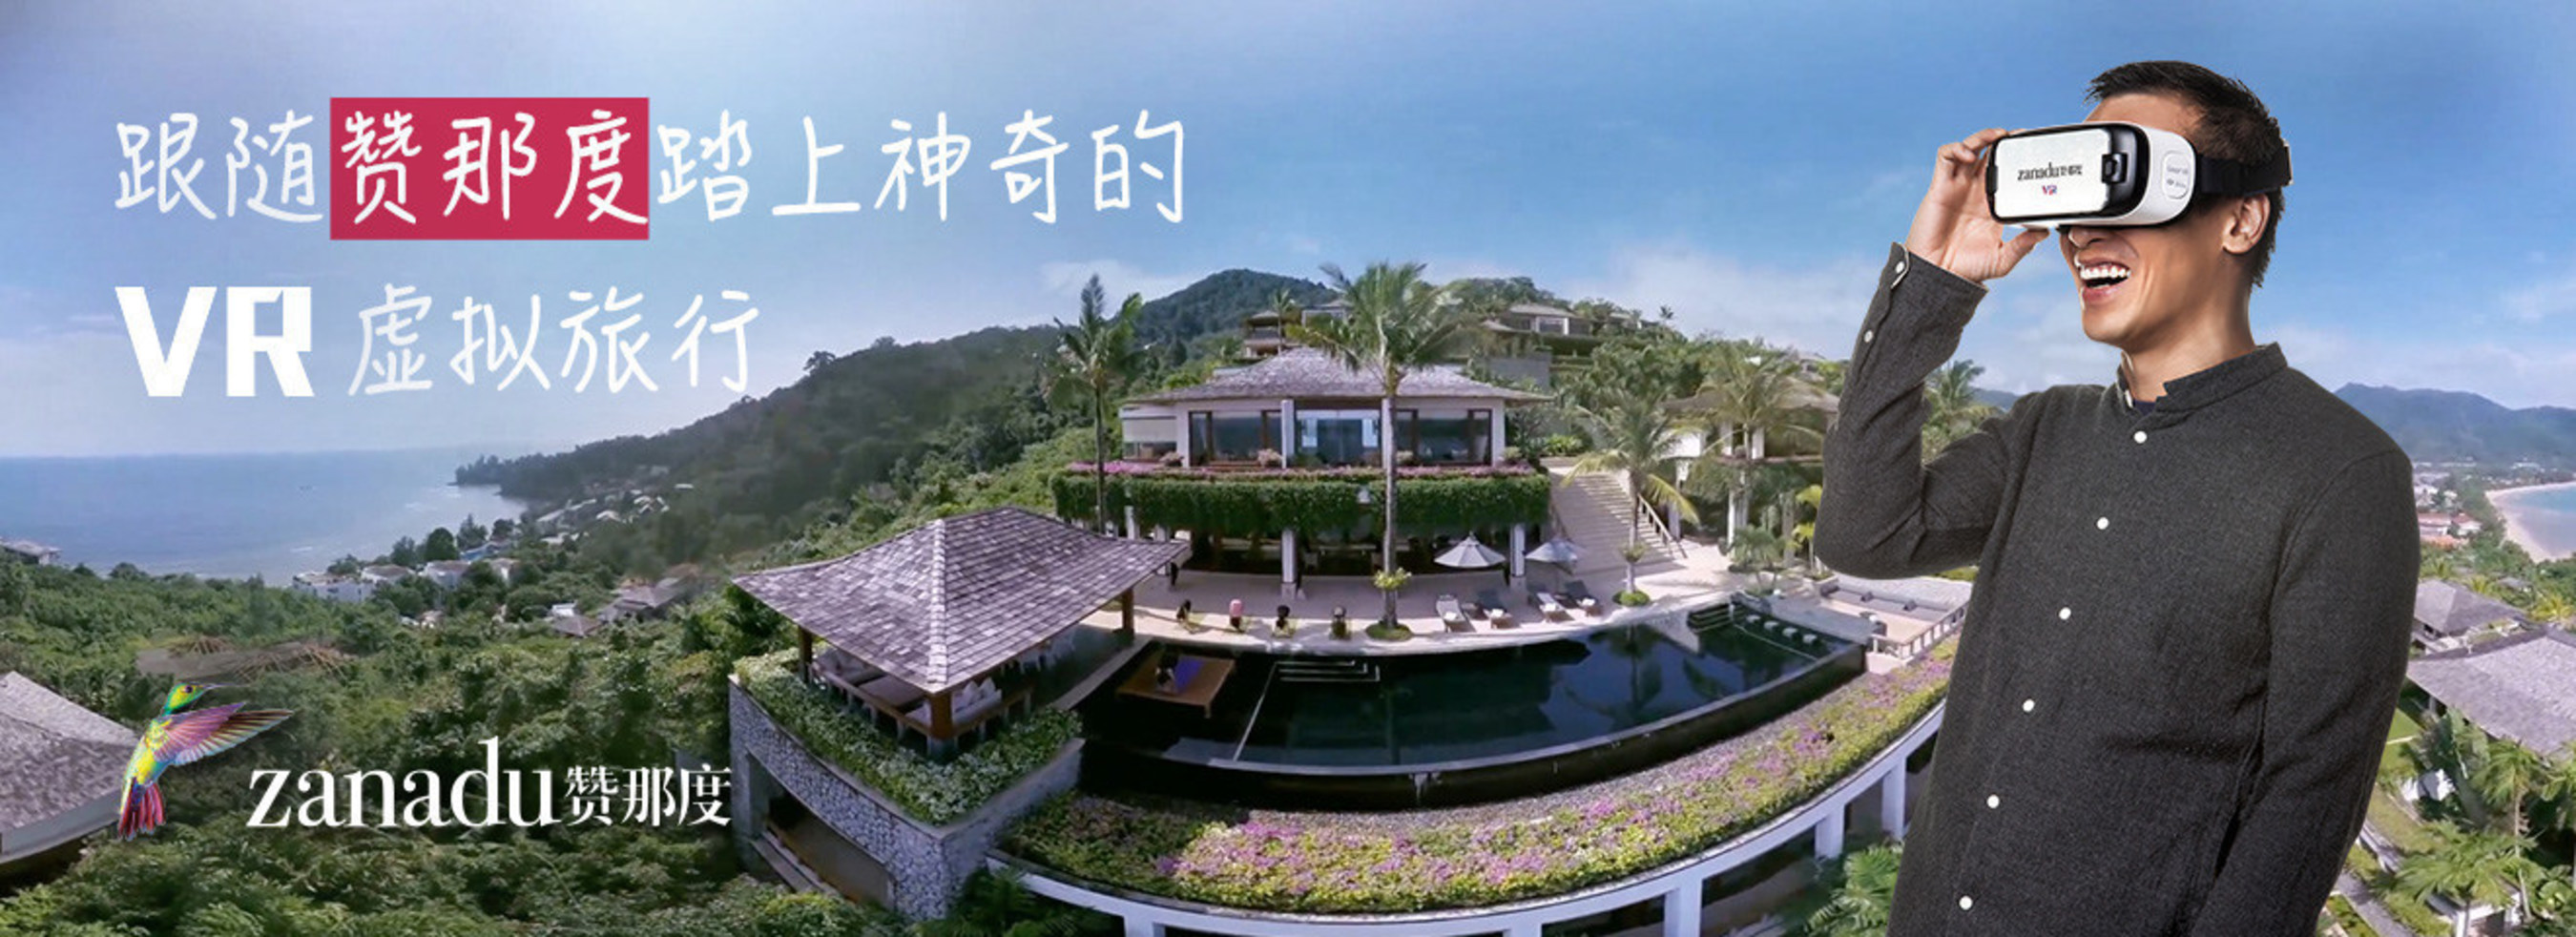 Tencent-Backed Zanadu Expands Popular Lifestyle Travel Platform with launch of VR Content App